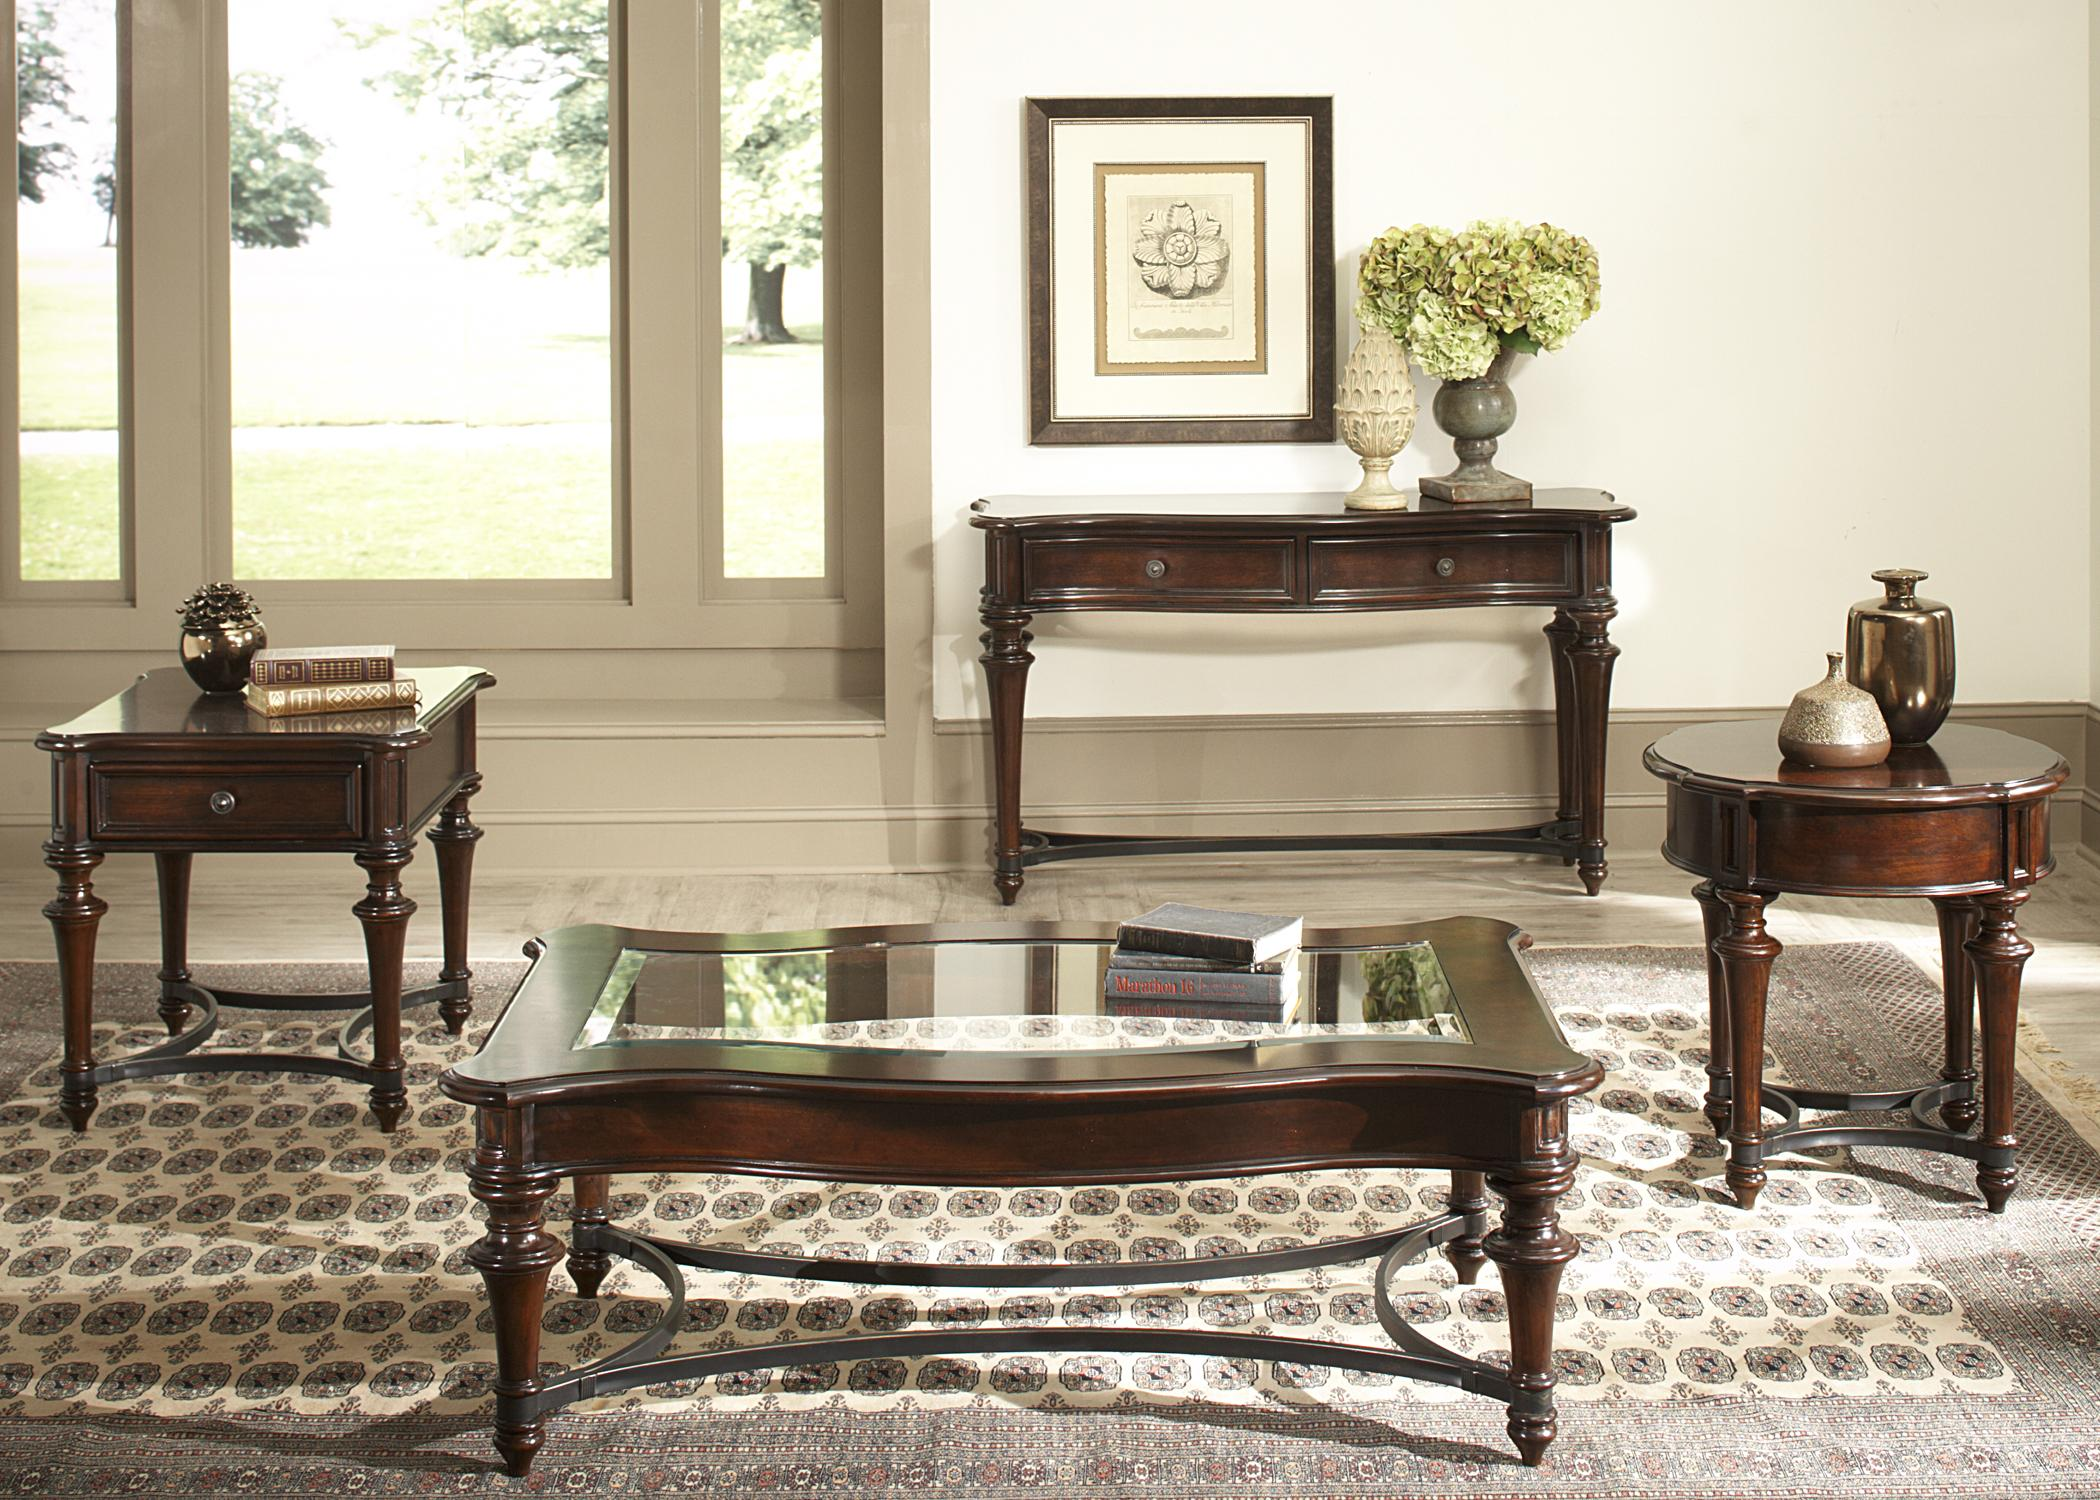 Kingston Plantation Sofa Table with Two Drawers and Metal